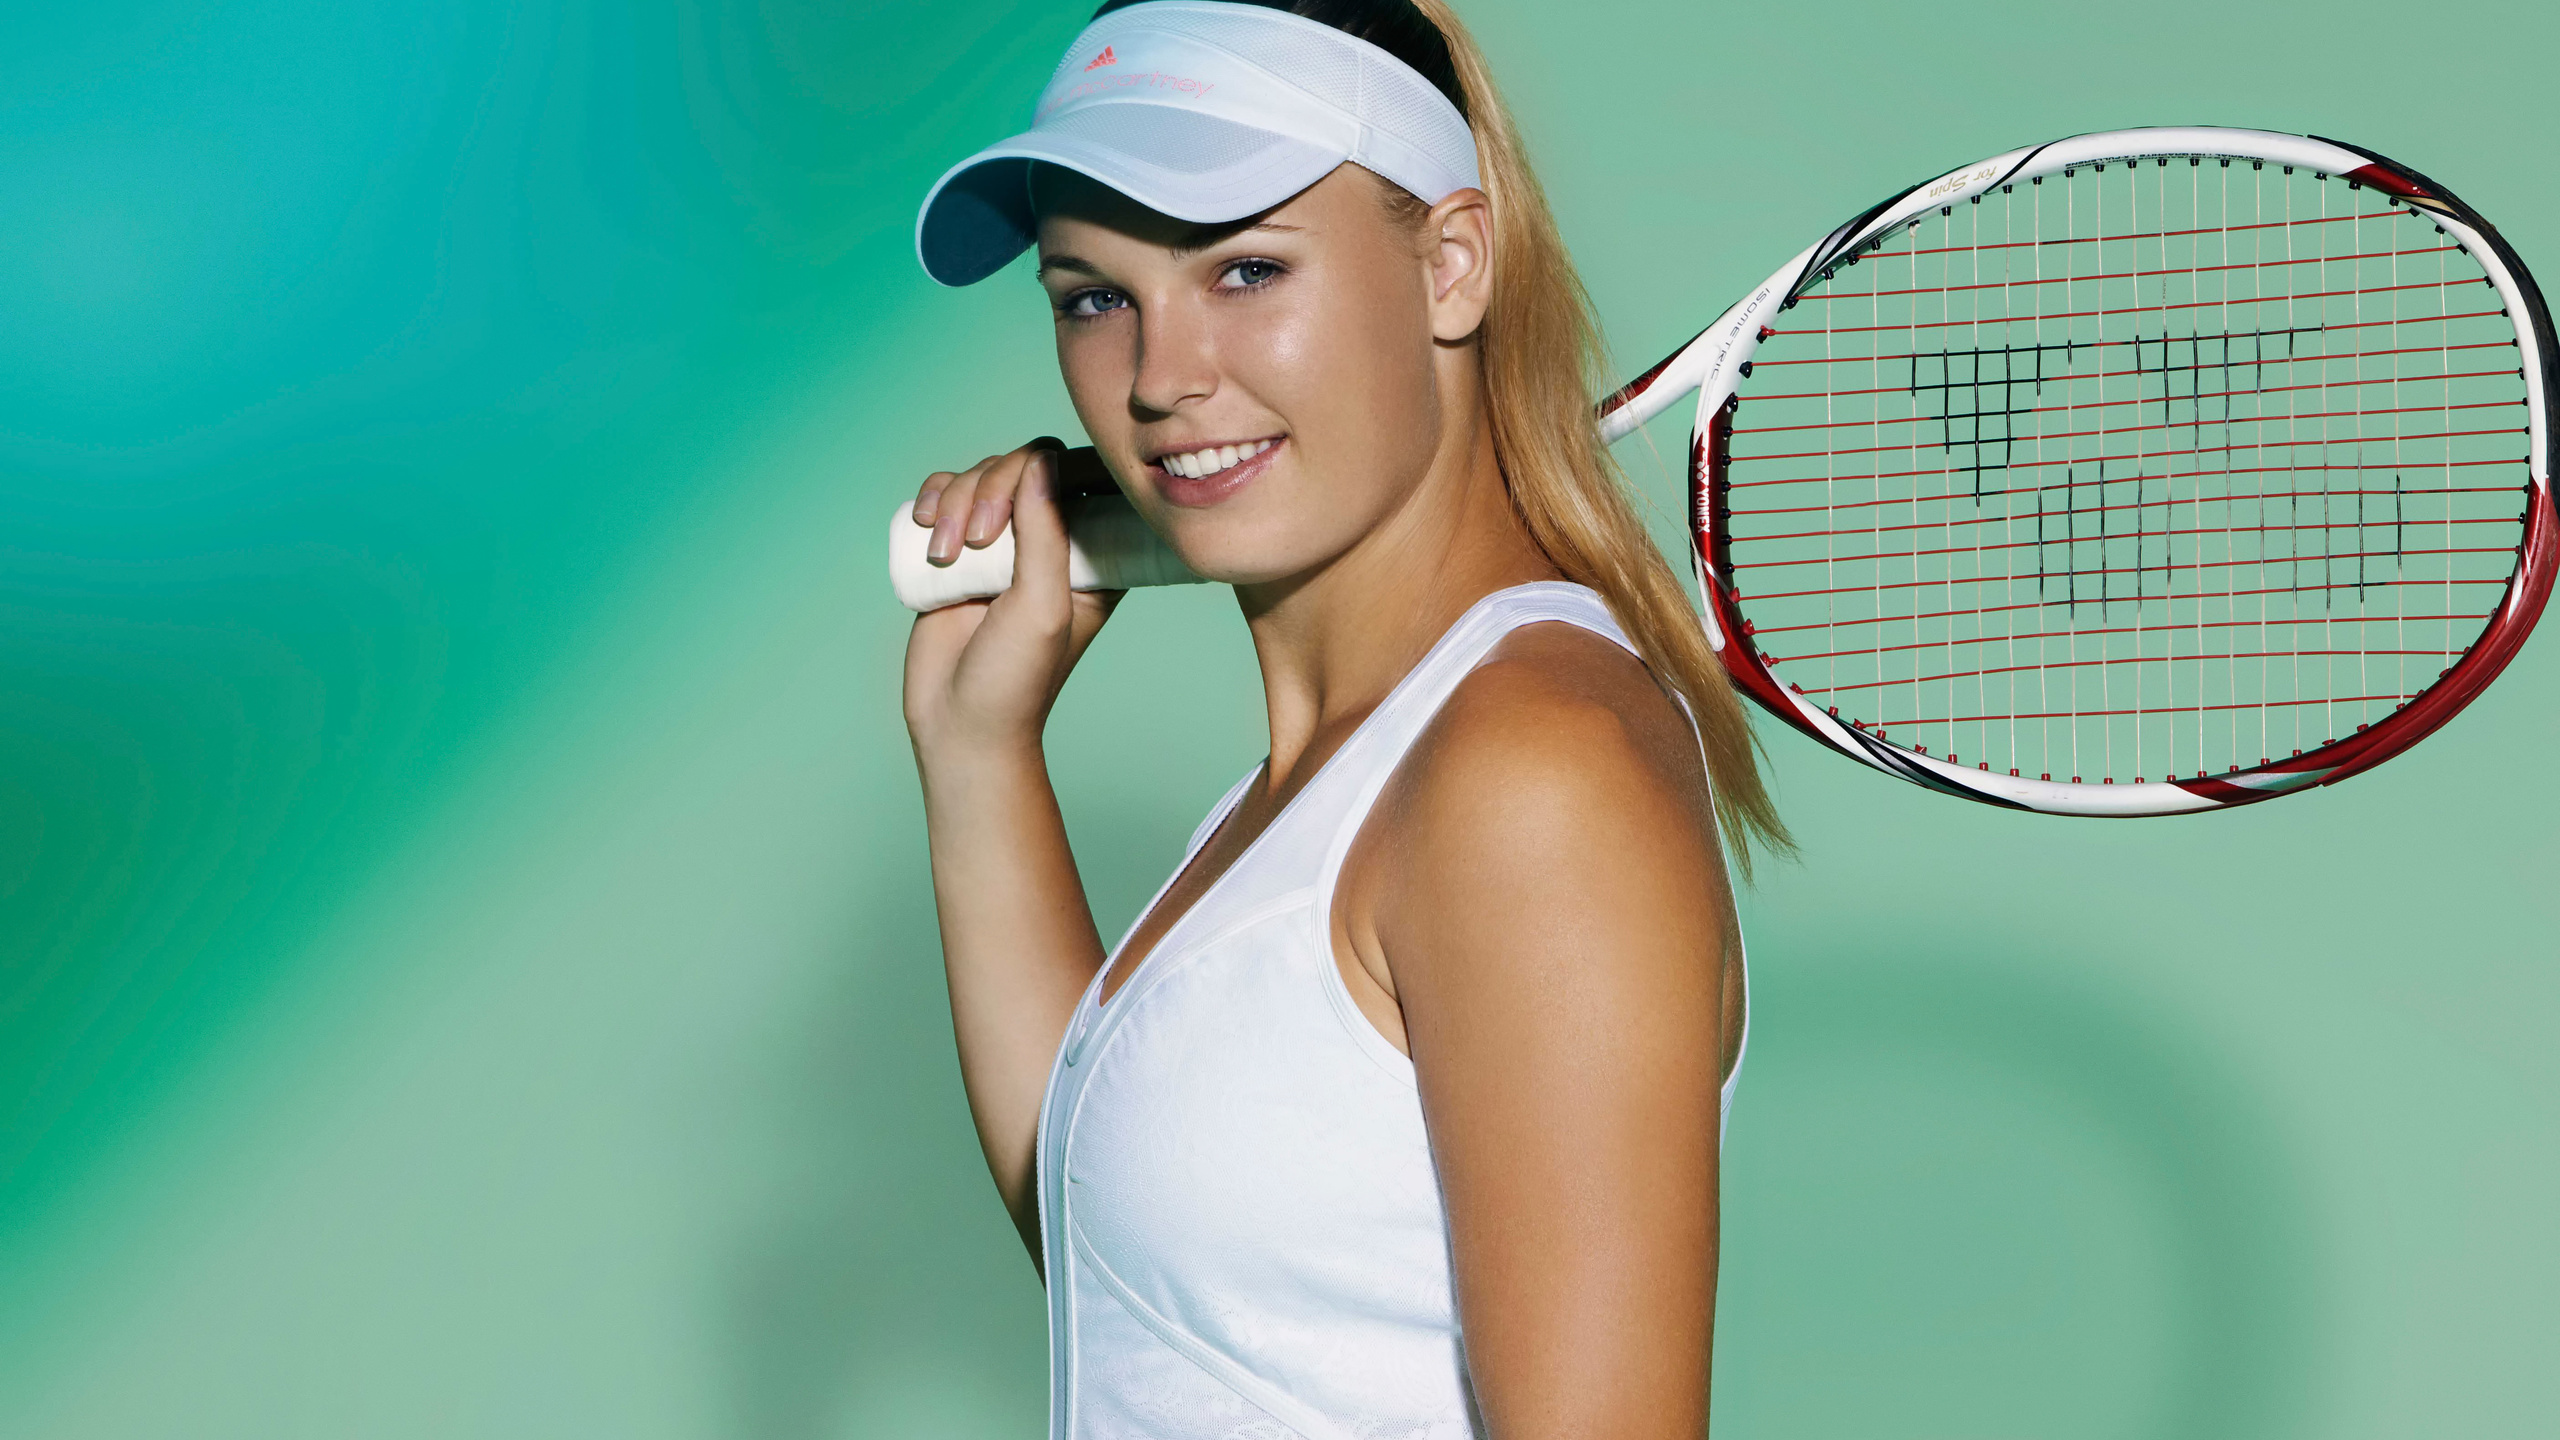 Caroline wozniacki 39 s body measurements height weight age for Model height